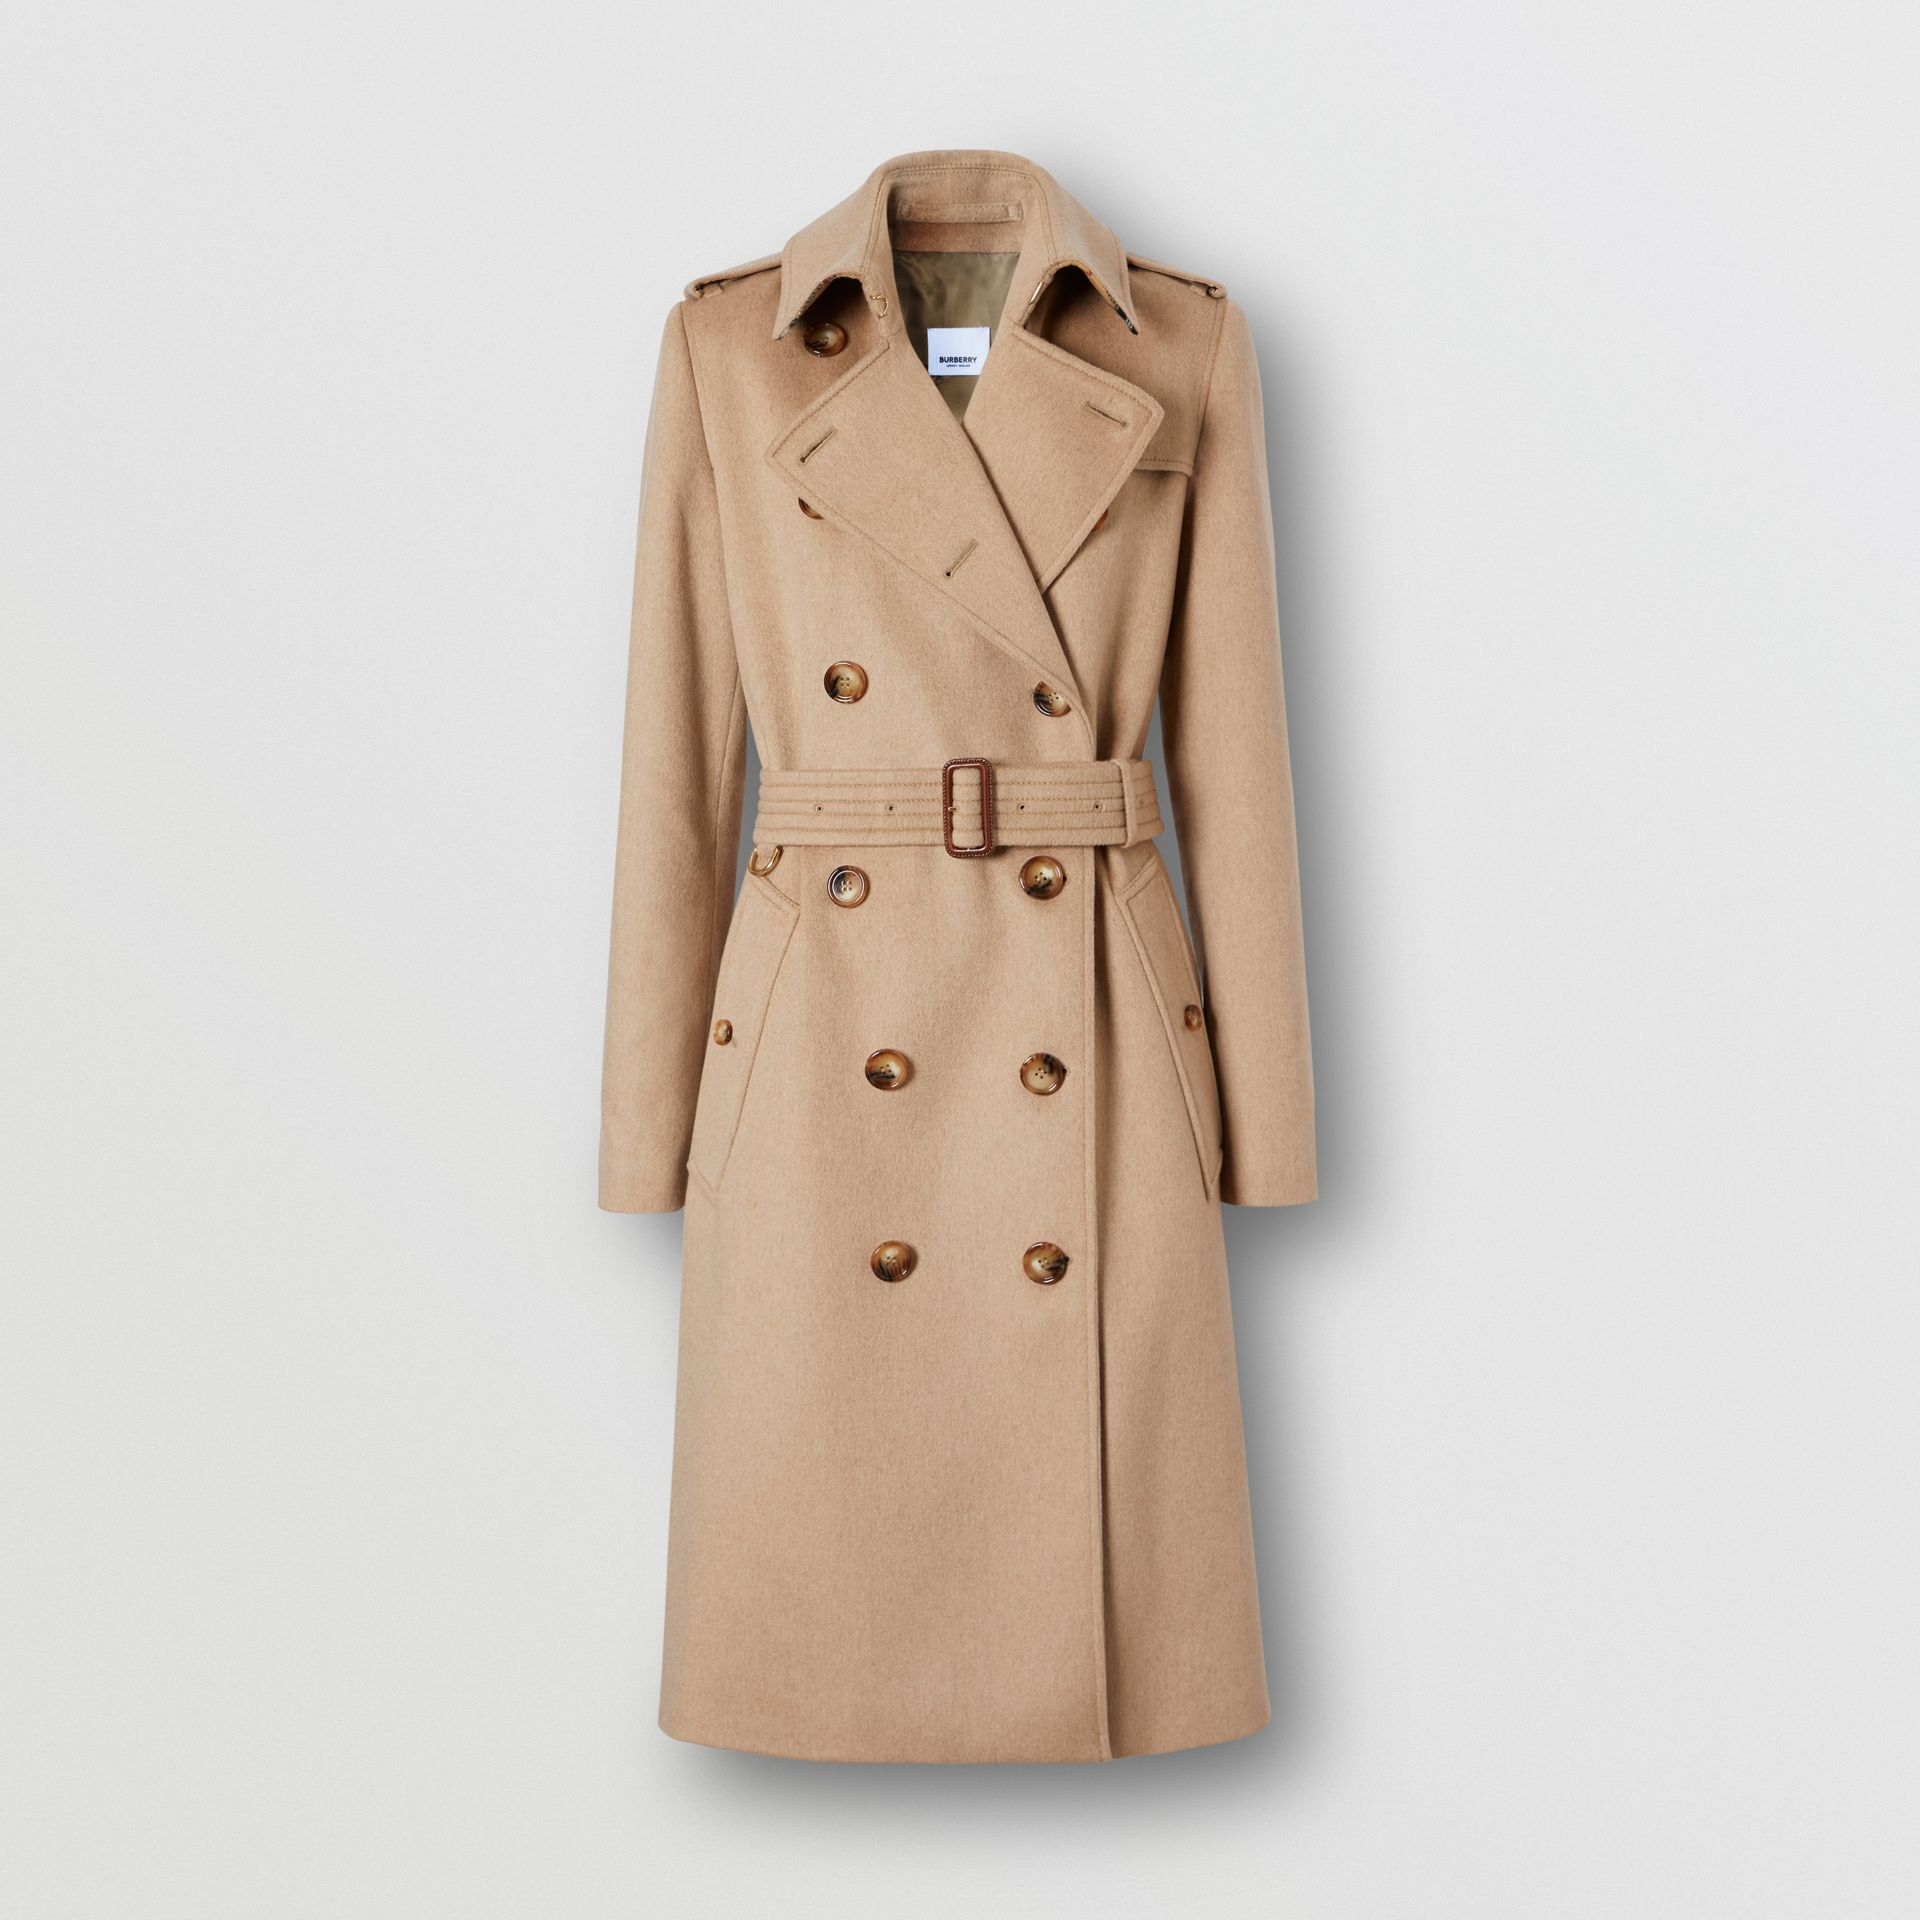 Cashmere Trench Coat in Camel - Women | Burberry United Kingdom - gallery image 3